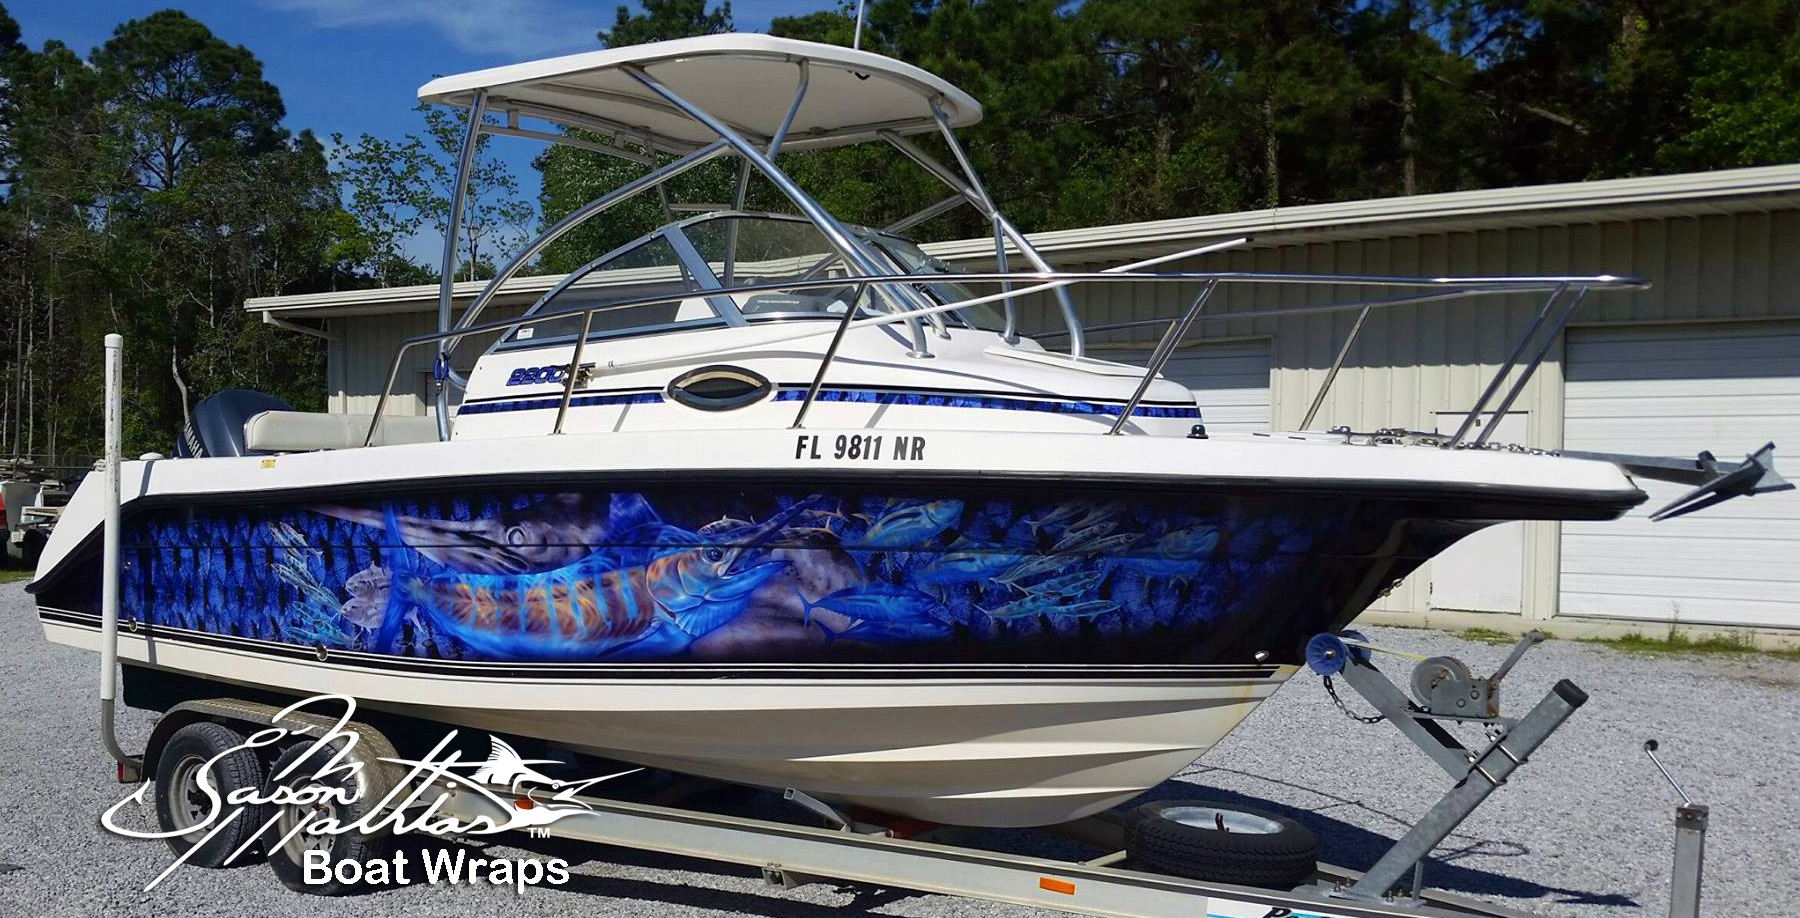 jason-mathias-boat-wrap-art-and-design-blue-marlin-fishing-ideas.jpg